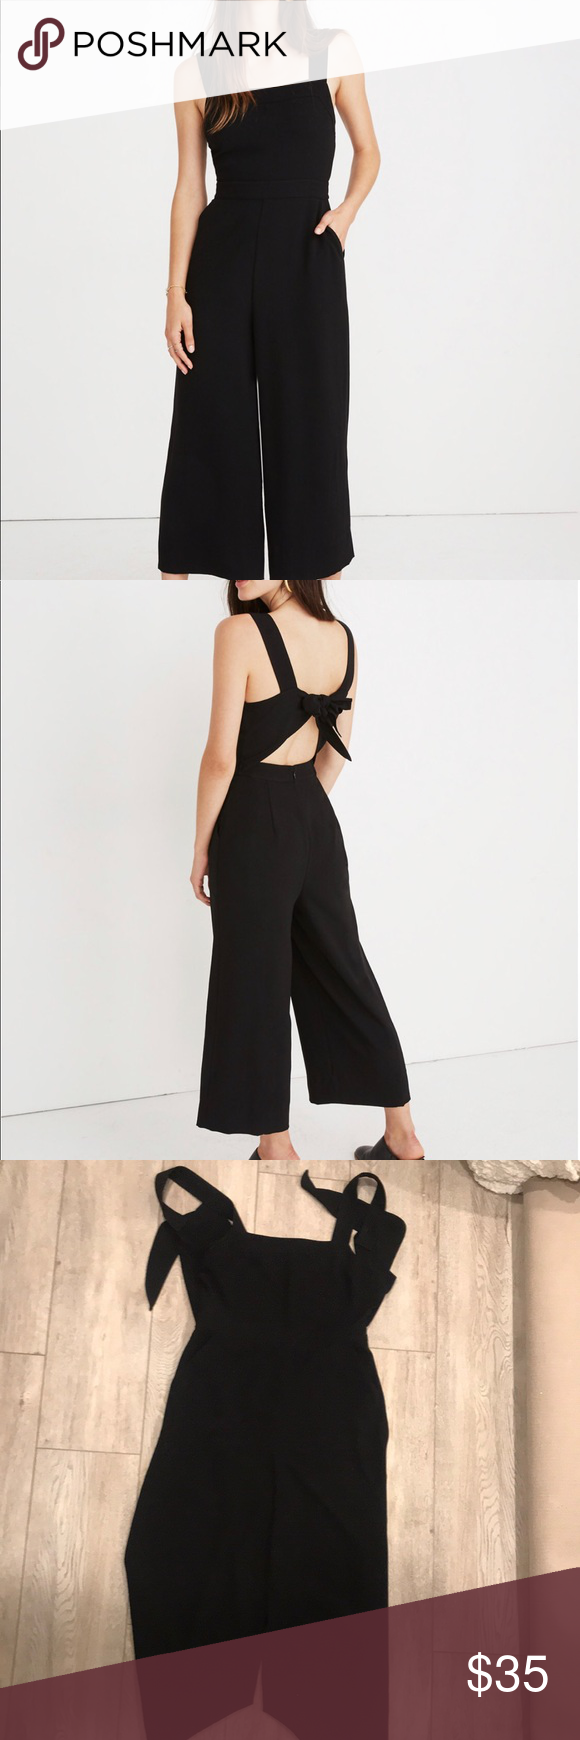 Madewell Apron Bow Back Jumpsuit In 2018 My Posh Picks Pinterest